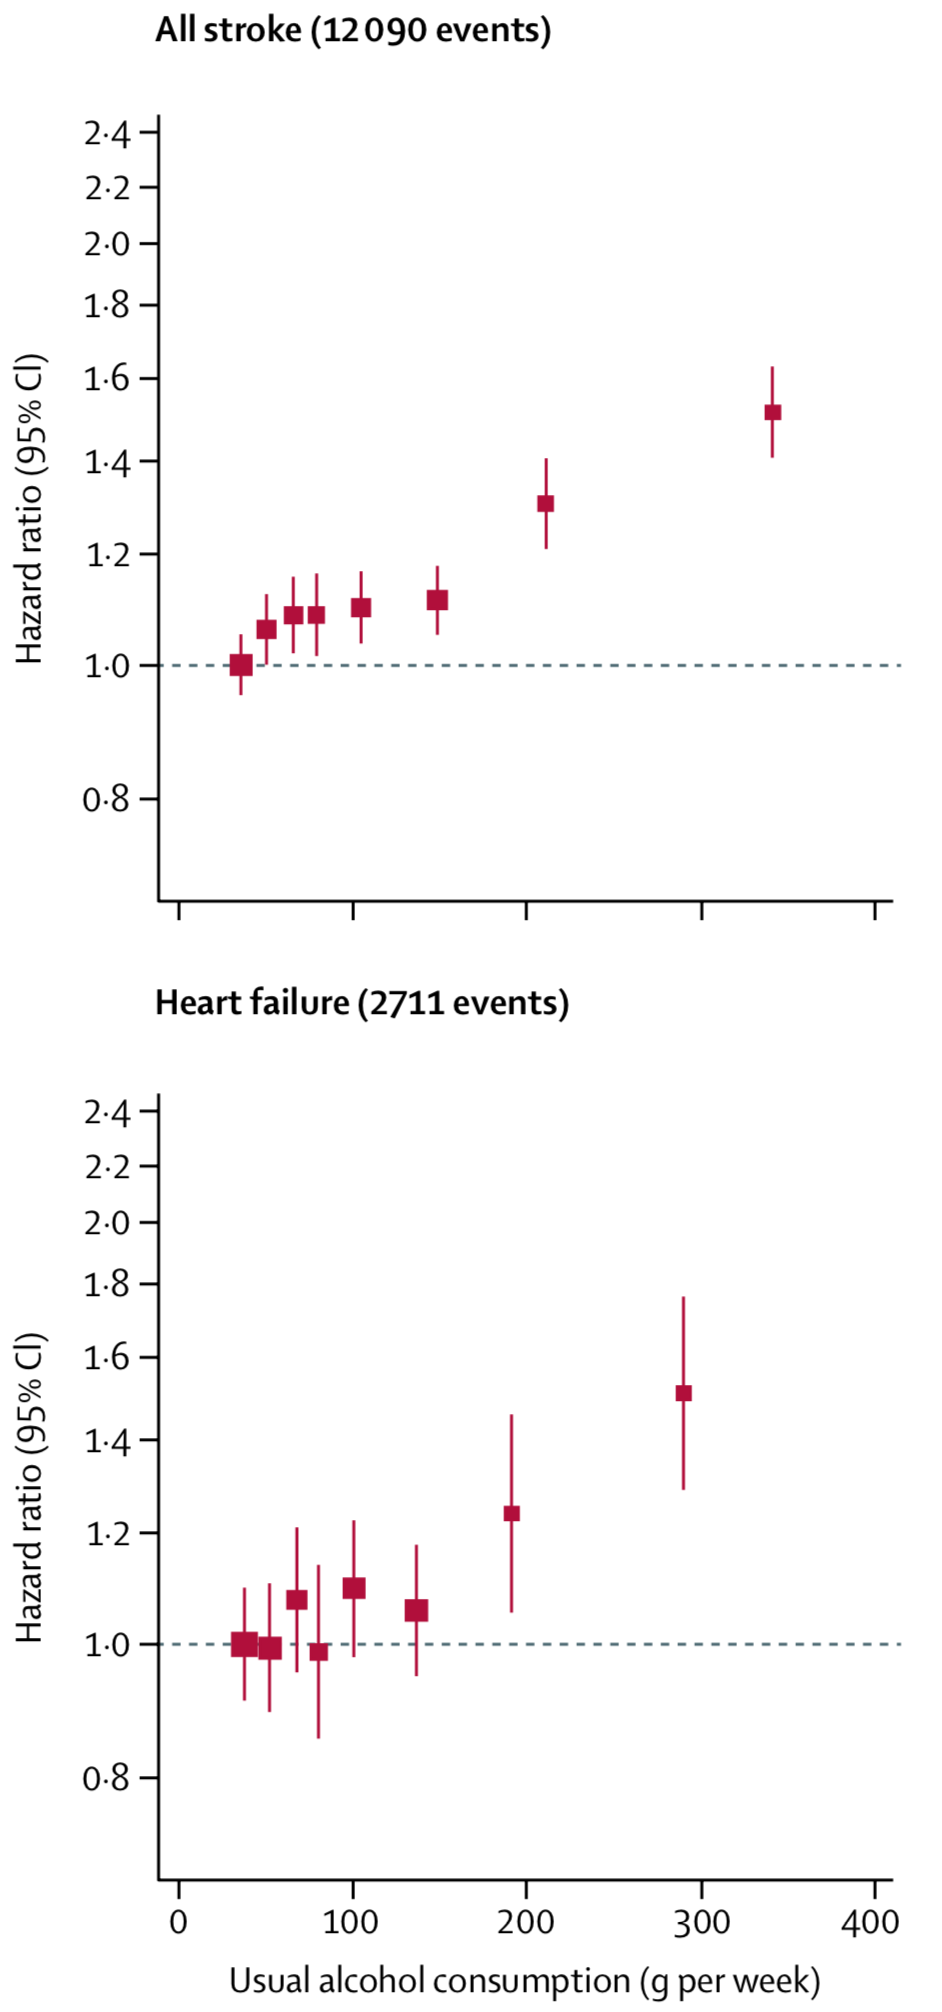 However, both stroke risk and heart failure risk increase with alcohol consumption roughly linearly.